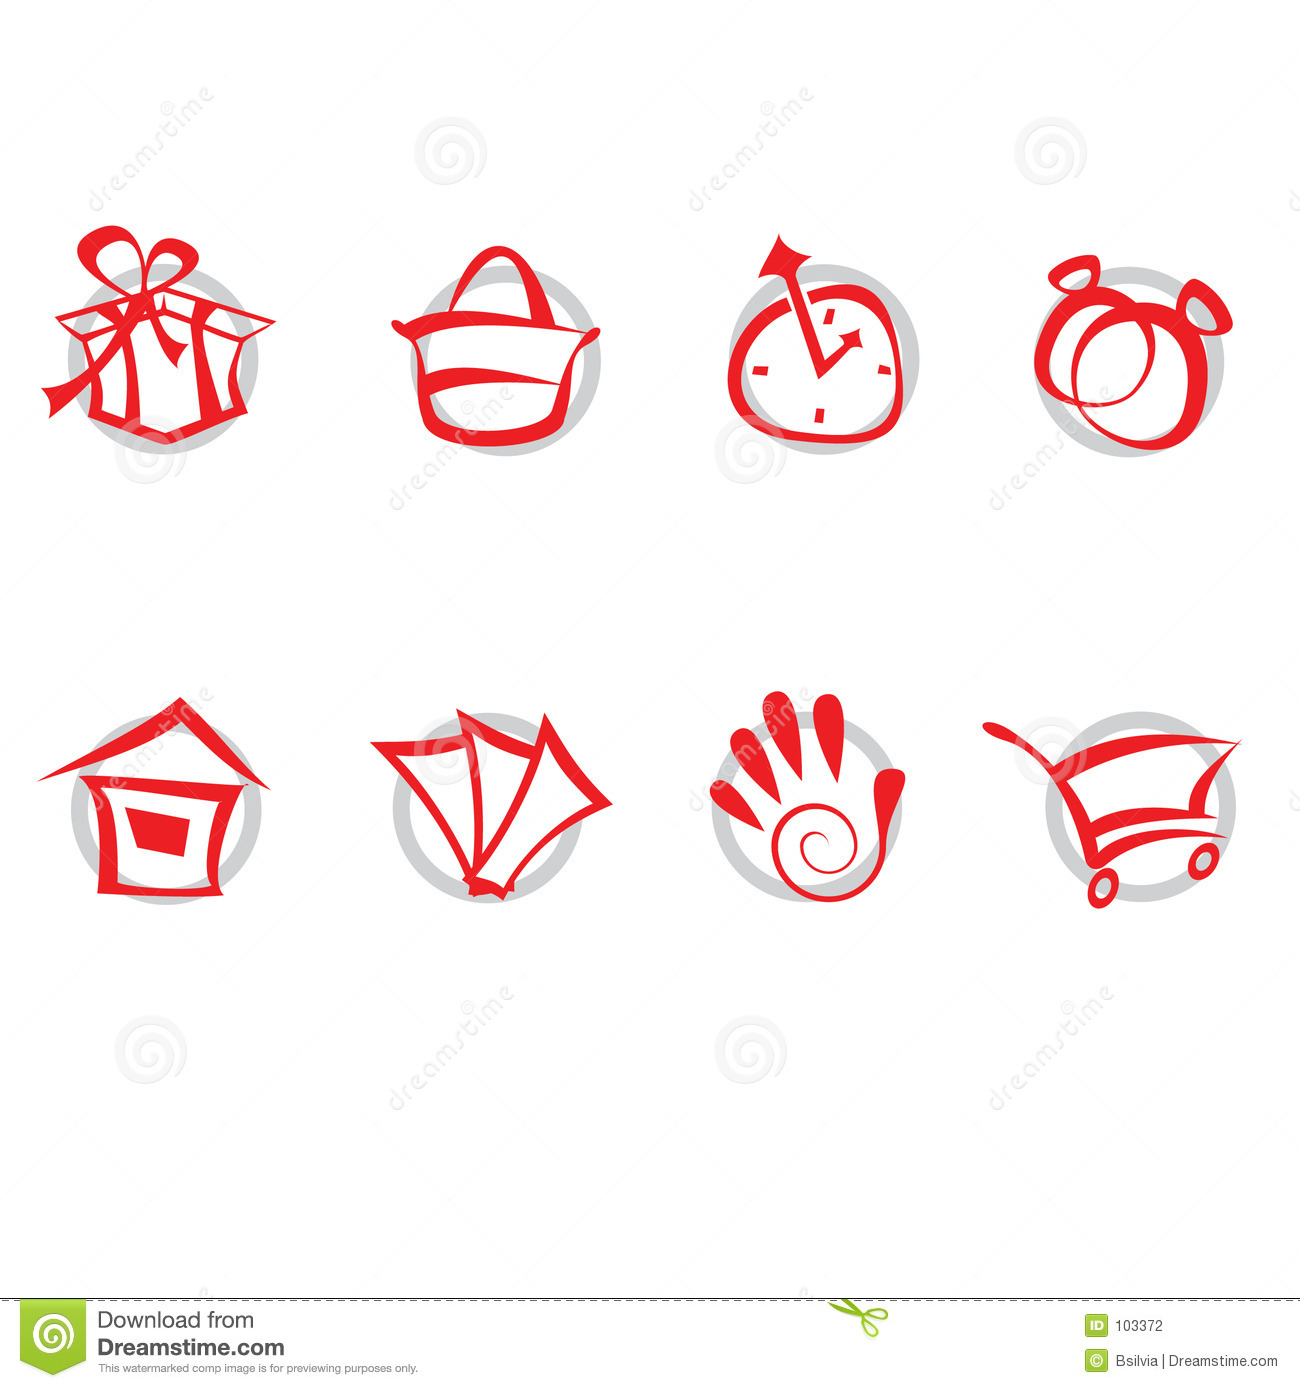 Download Icons set - shopping stock vector. Illustration of graphic - 103372